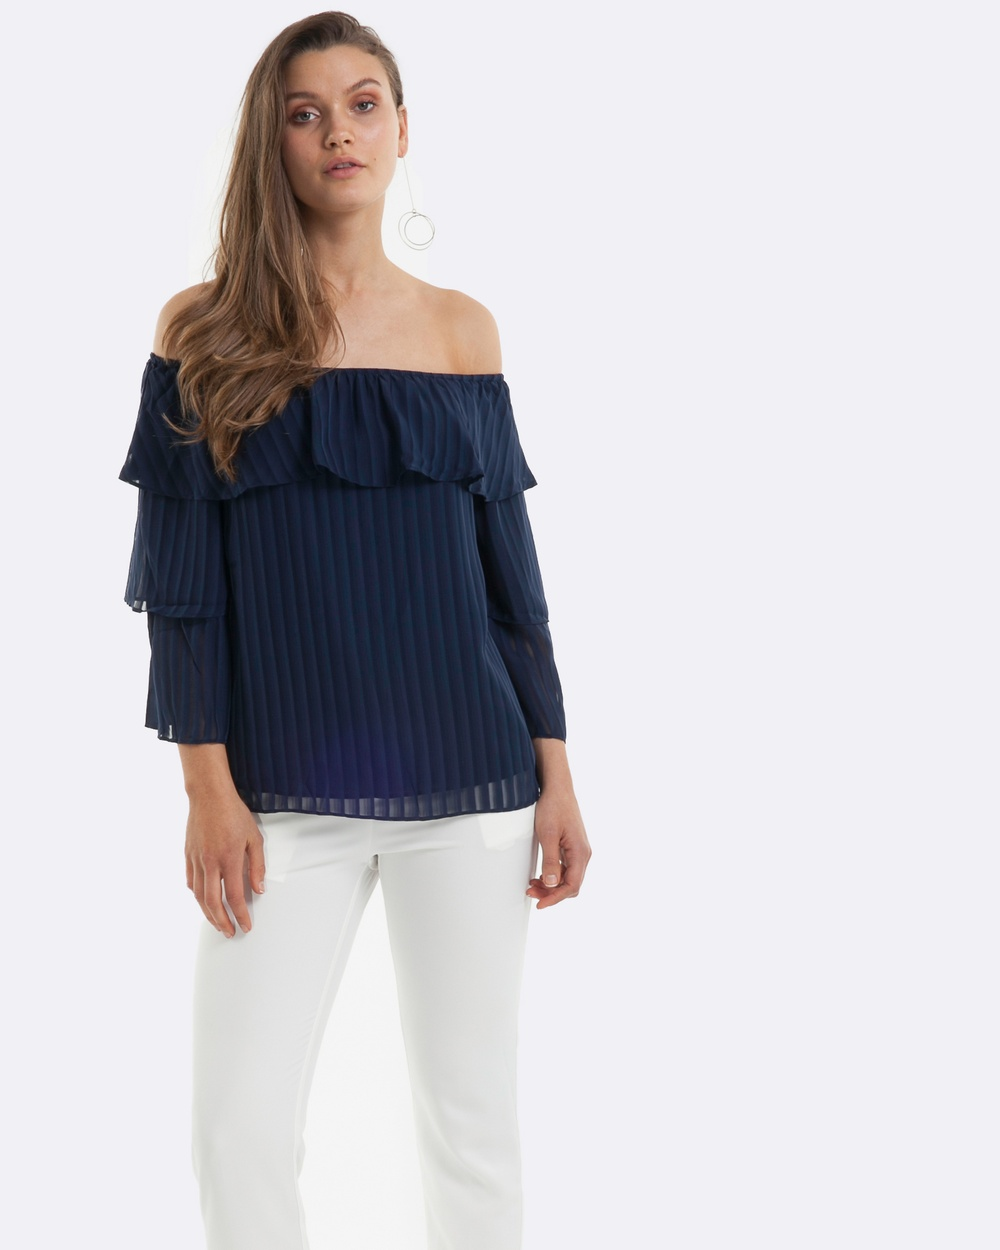 Amelius Adorned Top Tops Navy Adorned Top